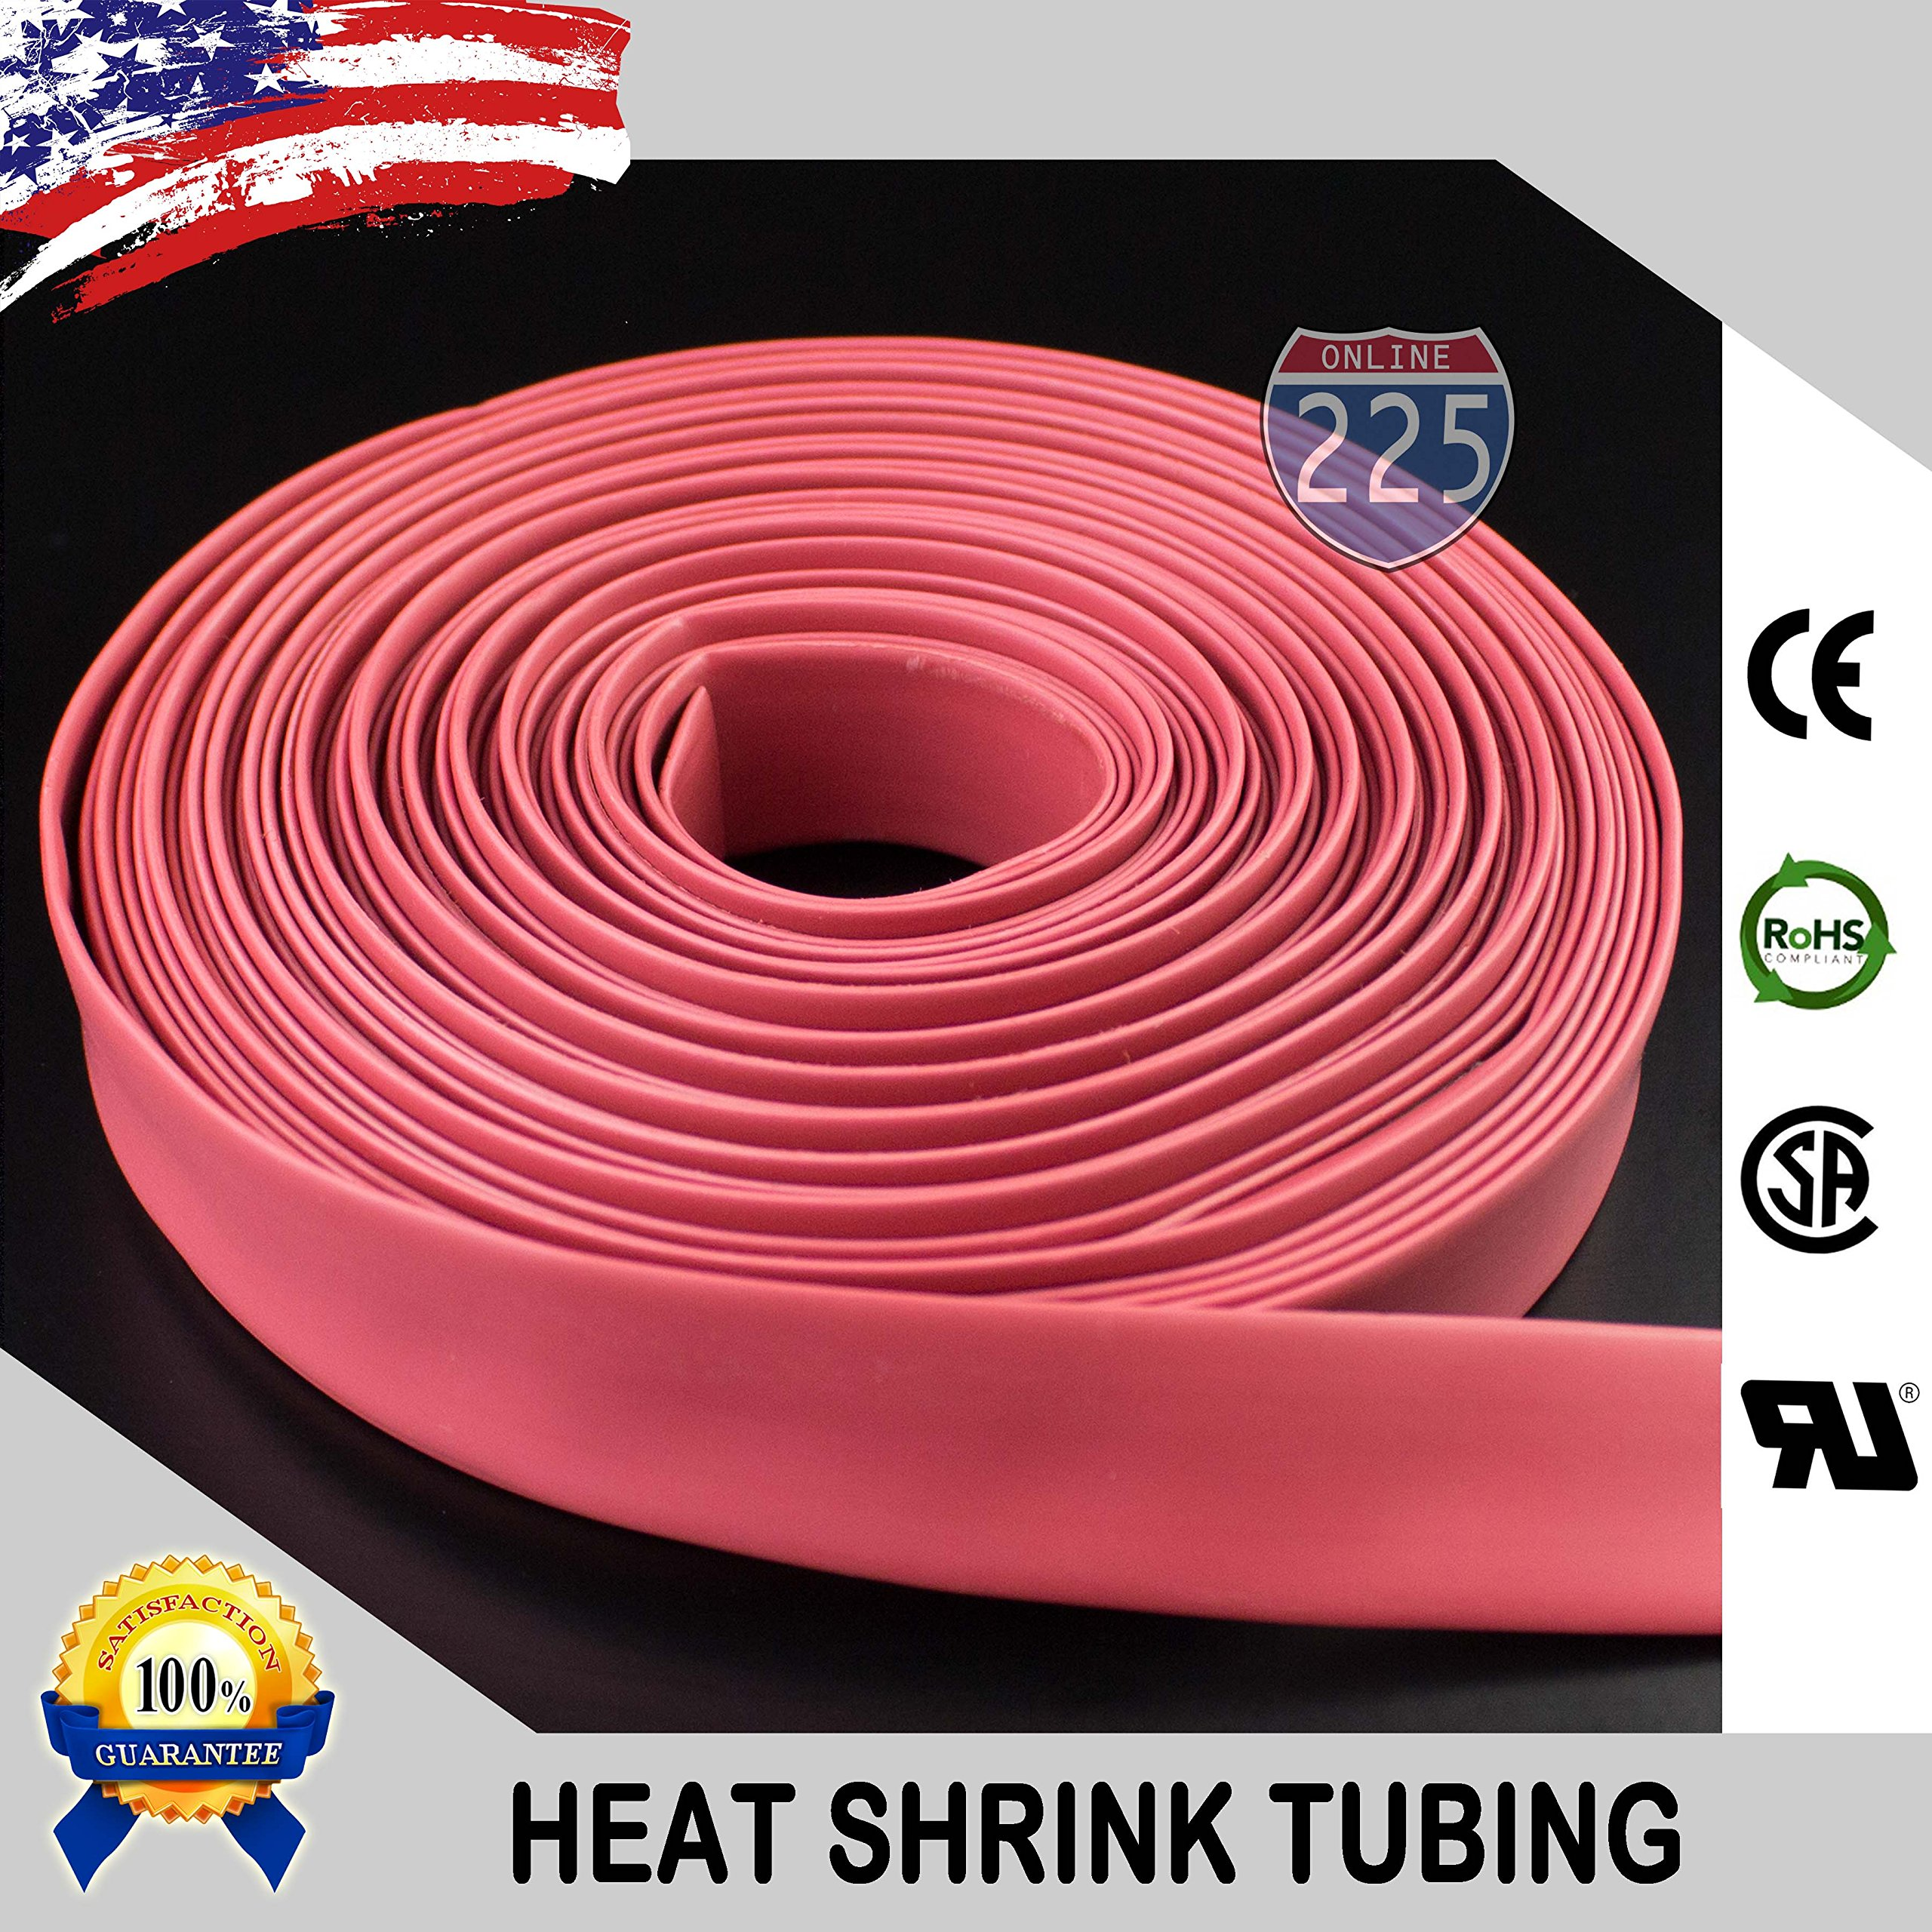 100 FT 1'' 25mm Polyolefin Red Heat Shrink Tubing 2:1 Ratio